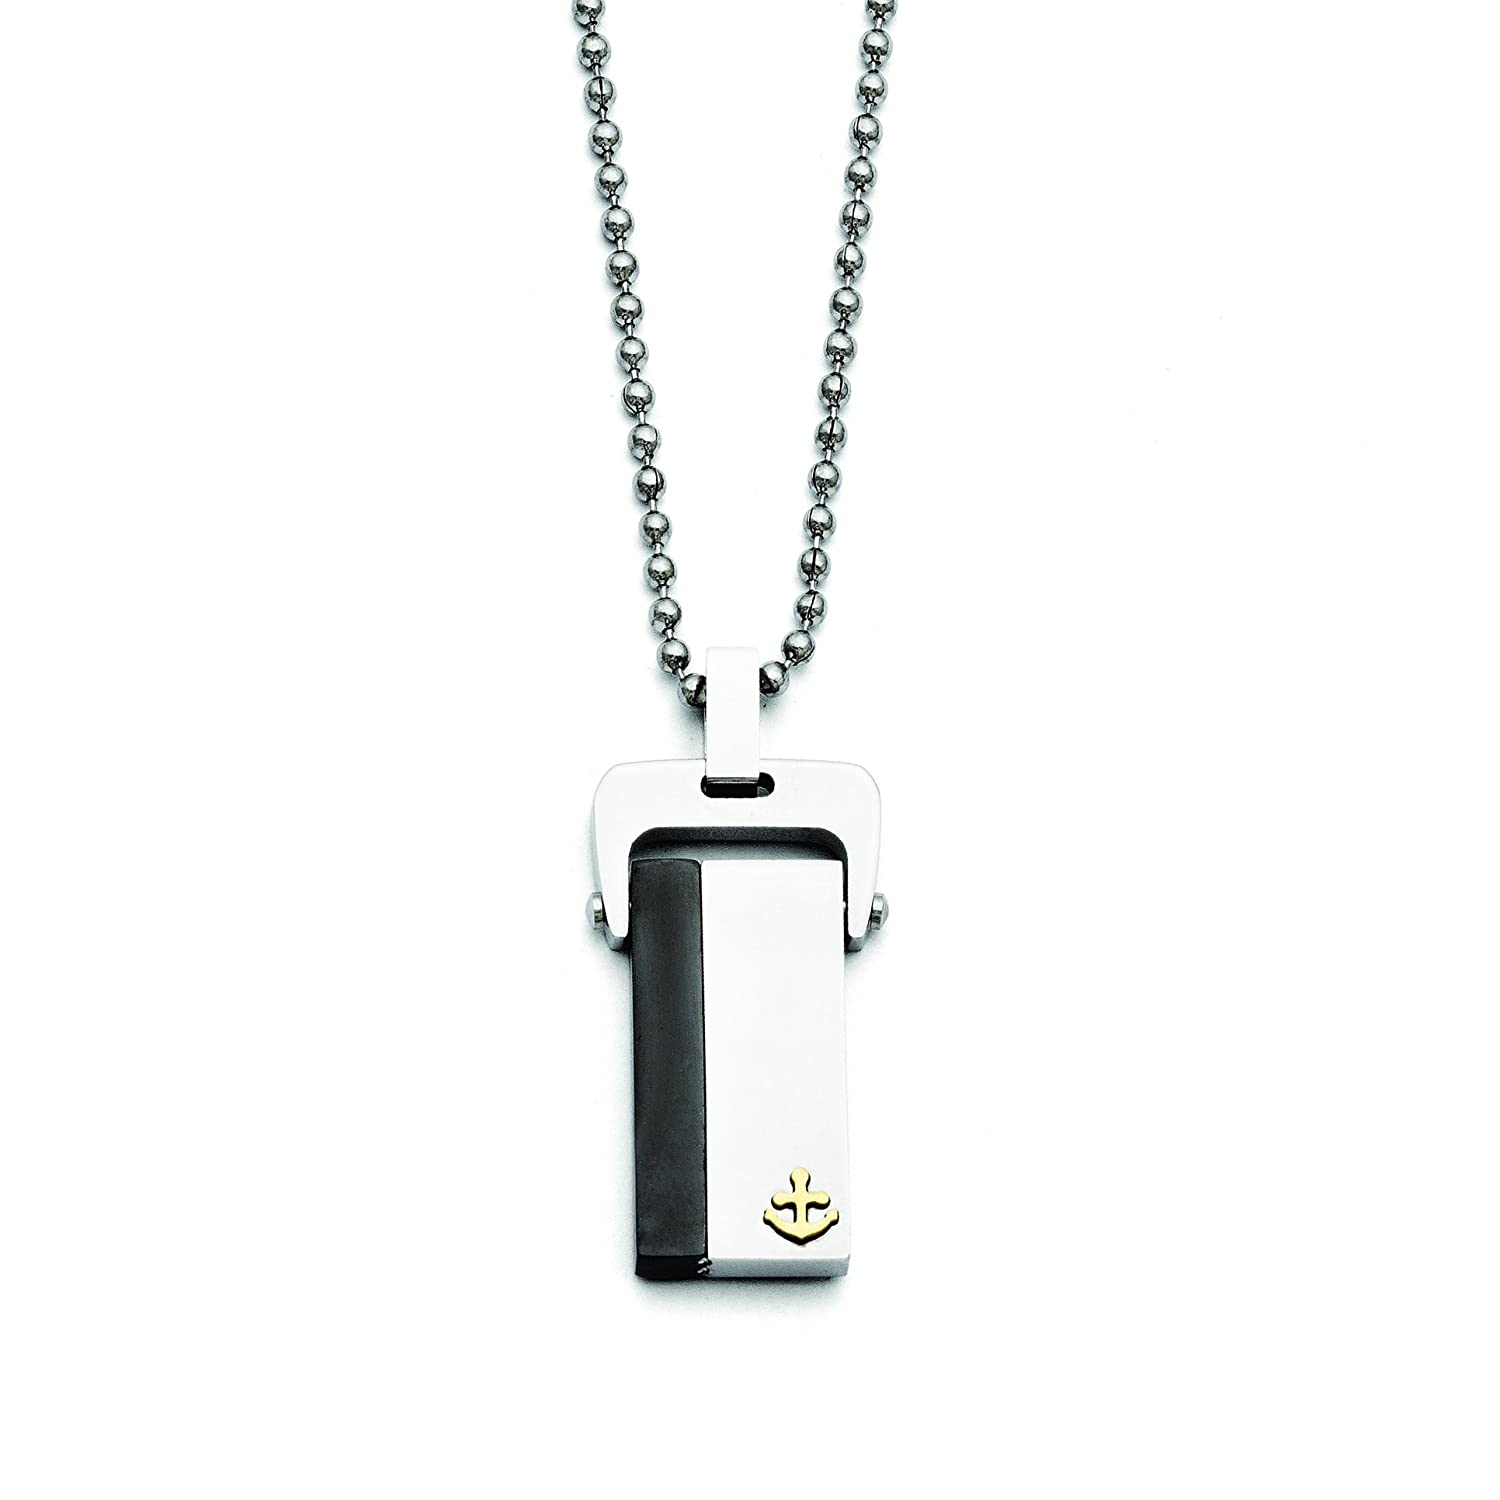 Shop4Silver Stainless Steel Polished Yellow /& Black Ip-Plated Dog Tag Necklace